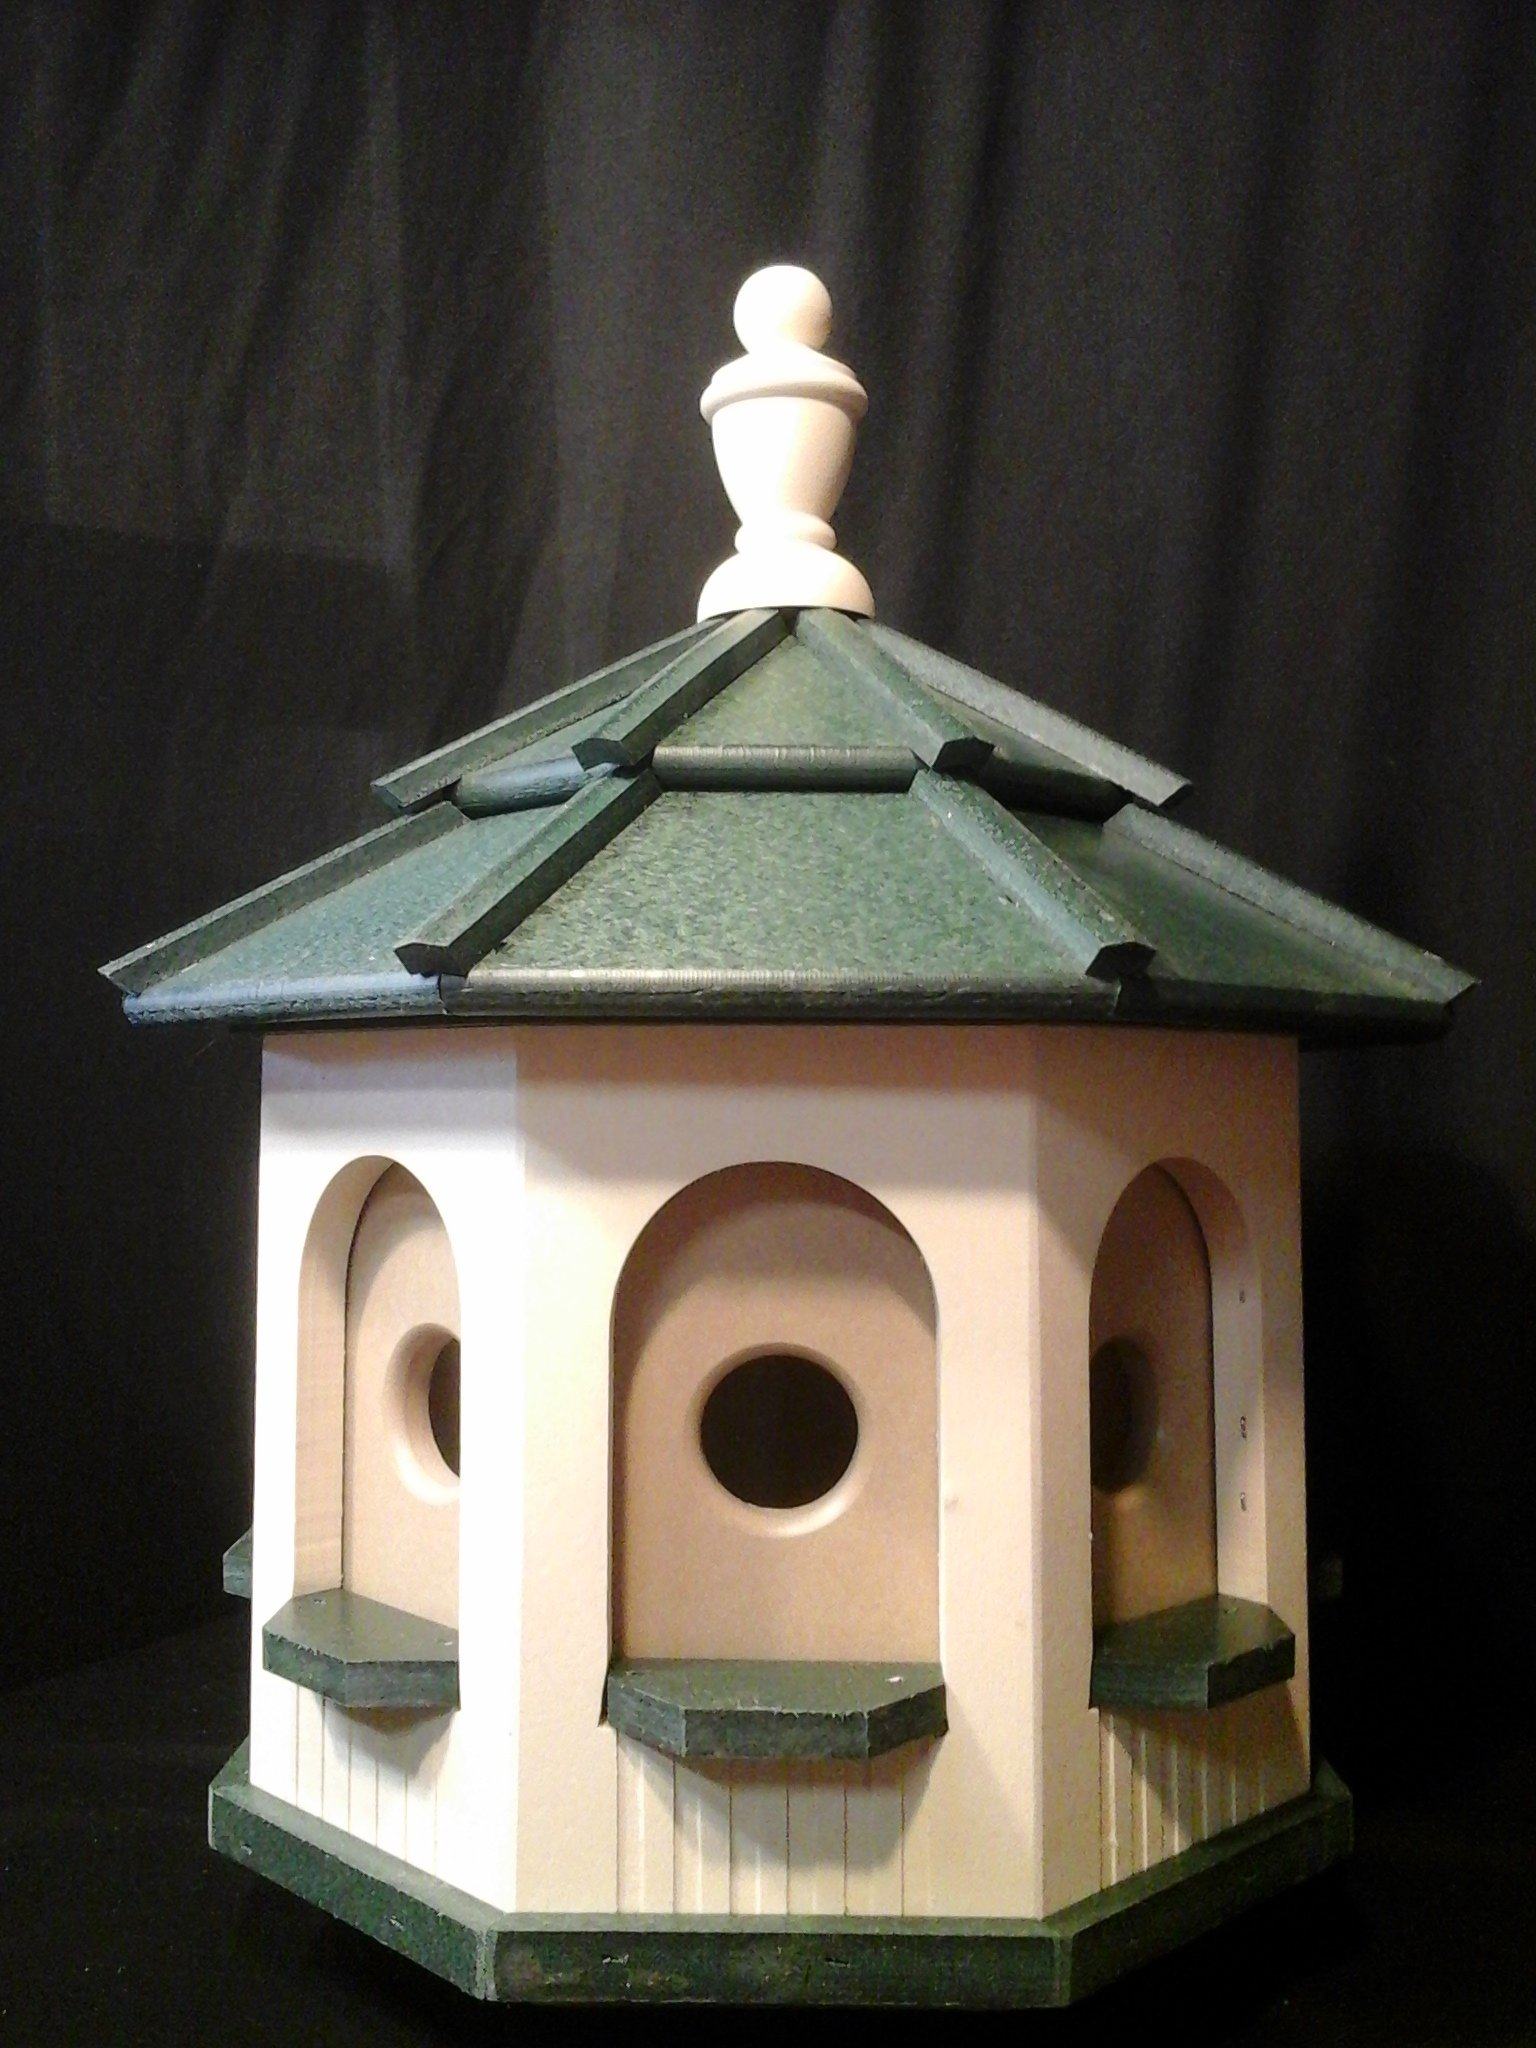 Medium Handcrafted Poly Octagon Gazebo Birdhouse Homemade Handmade Ivory & Green